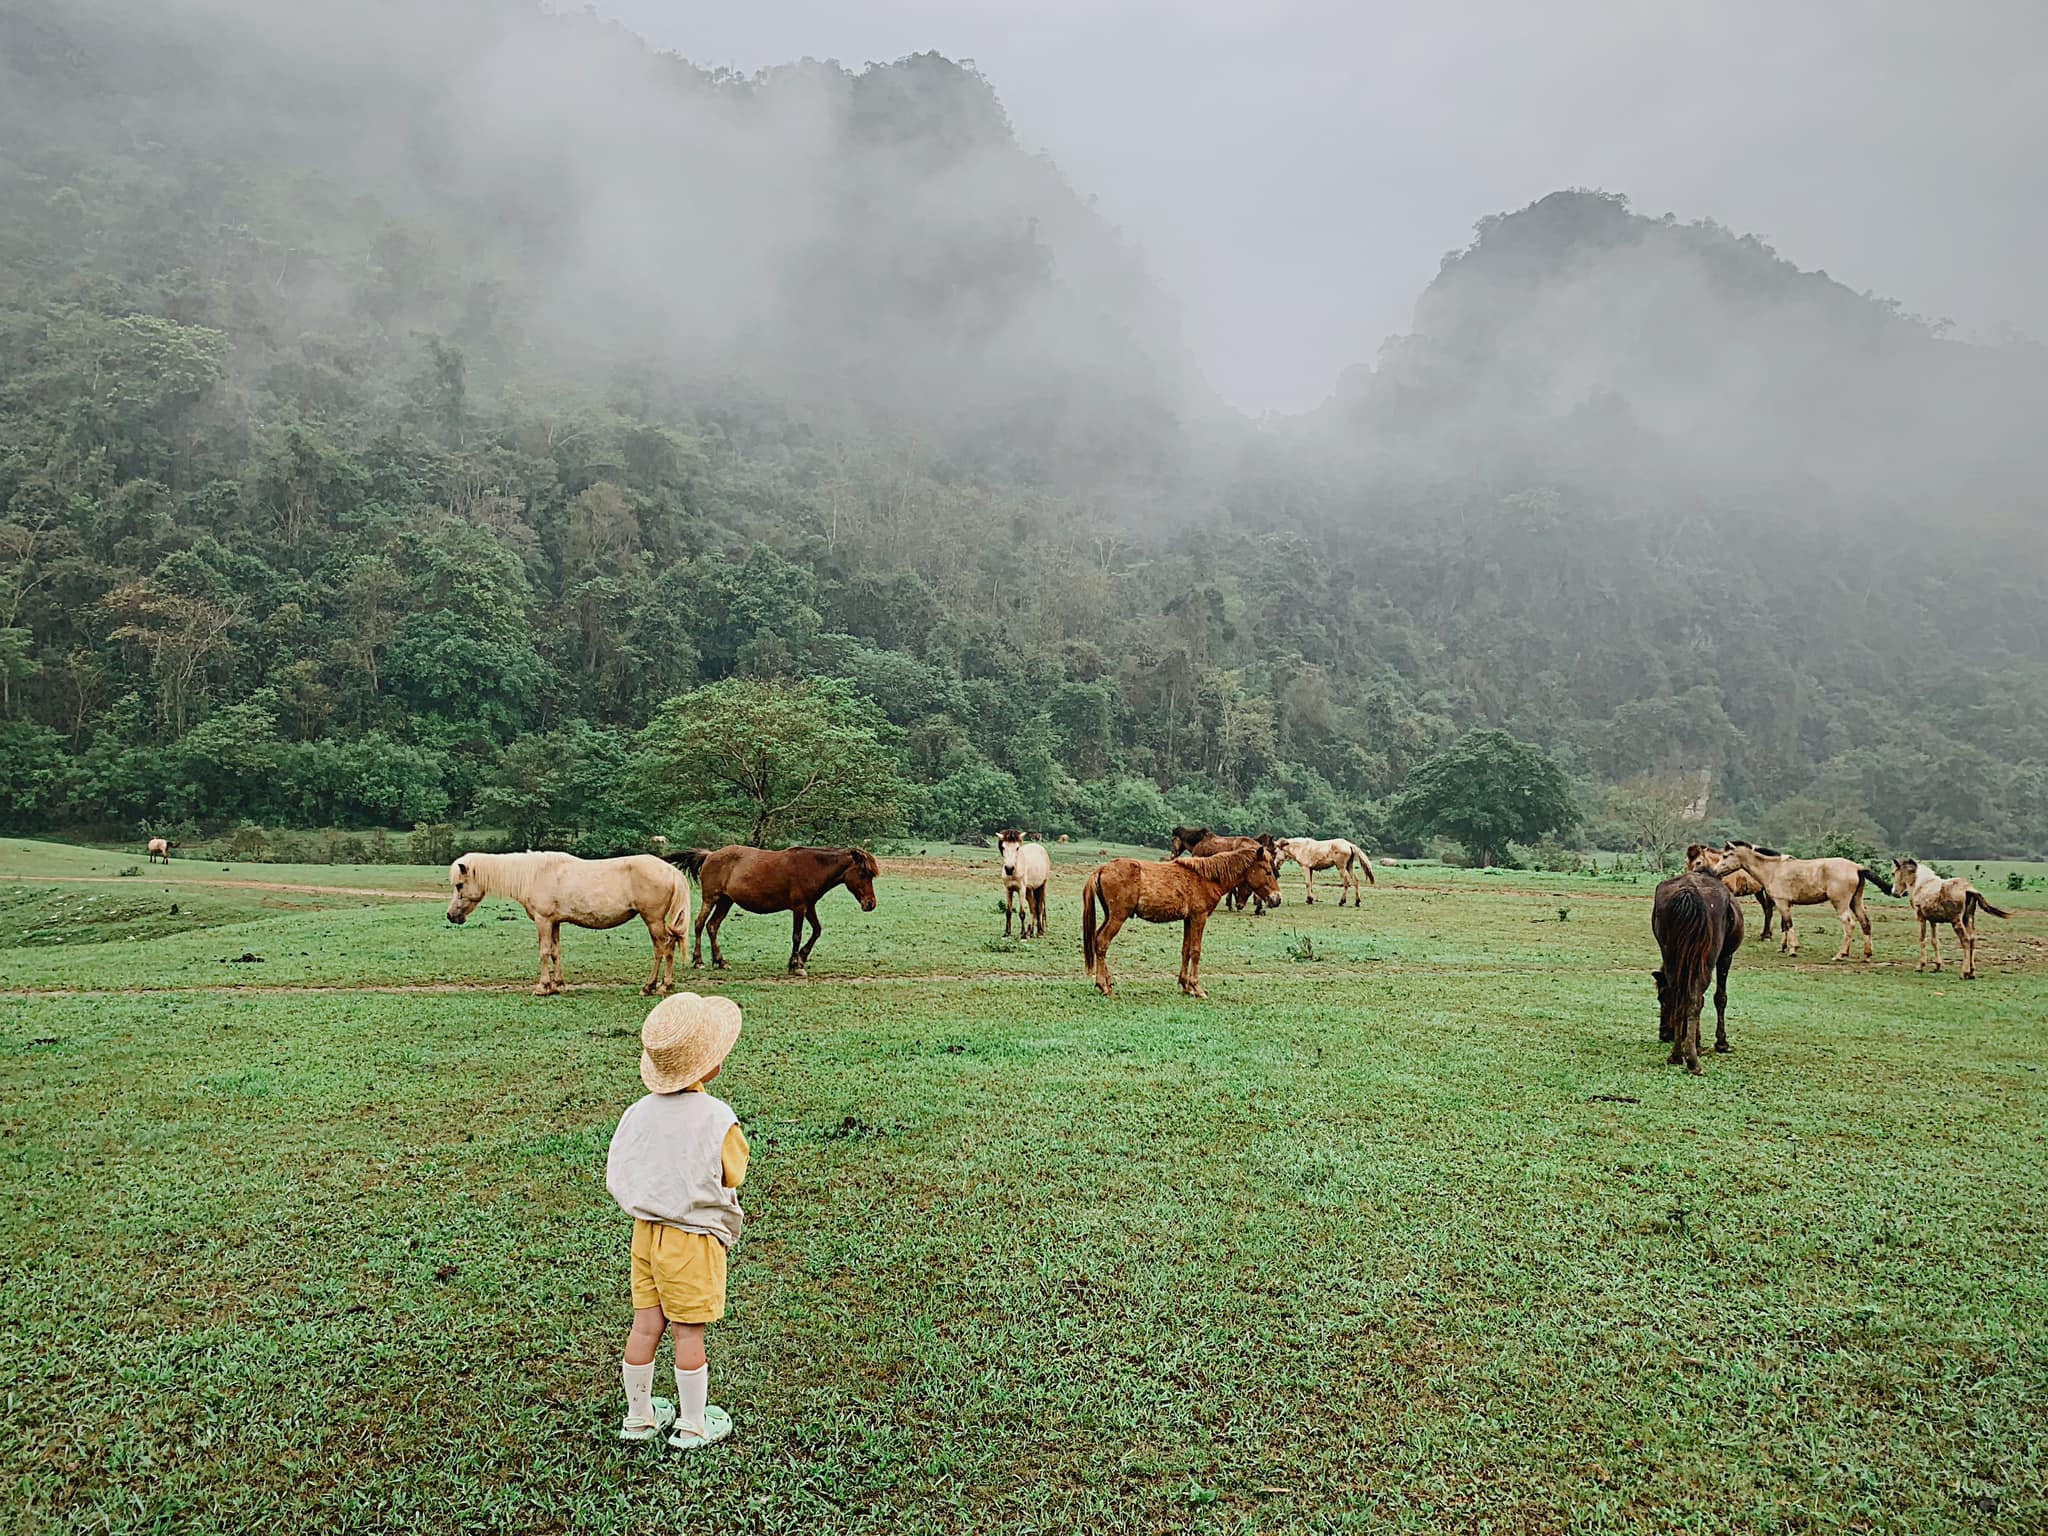 Nhungs son watches a herd of horses grazing on a grassland at Dong Lam steppe in Lang Son Province during his familys camping trip, May 2021. Photo courtesy of Nhung.